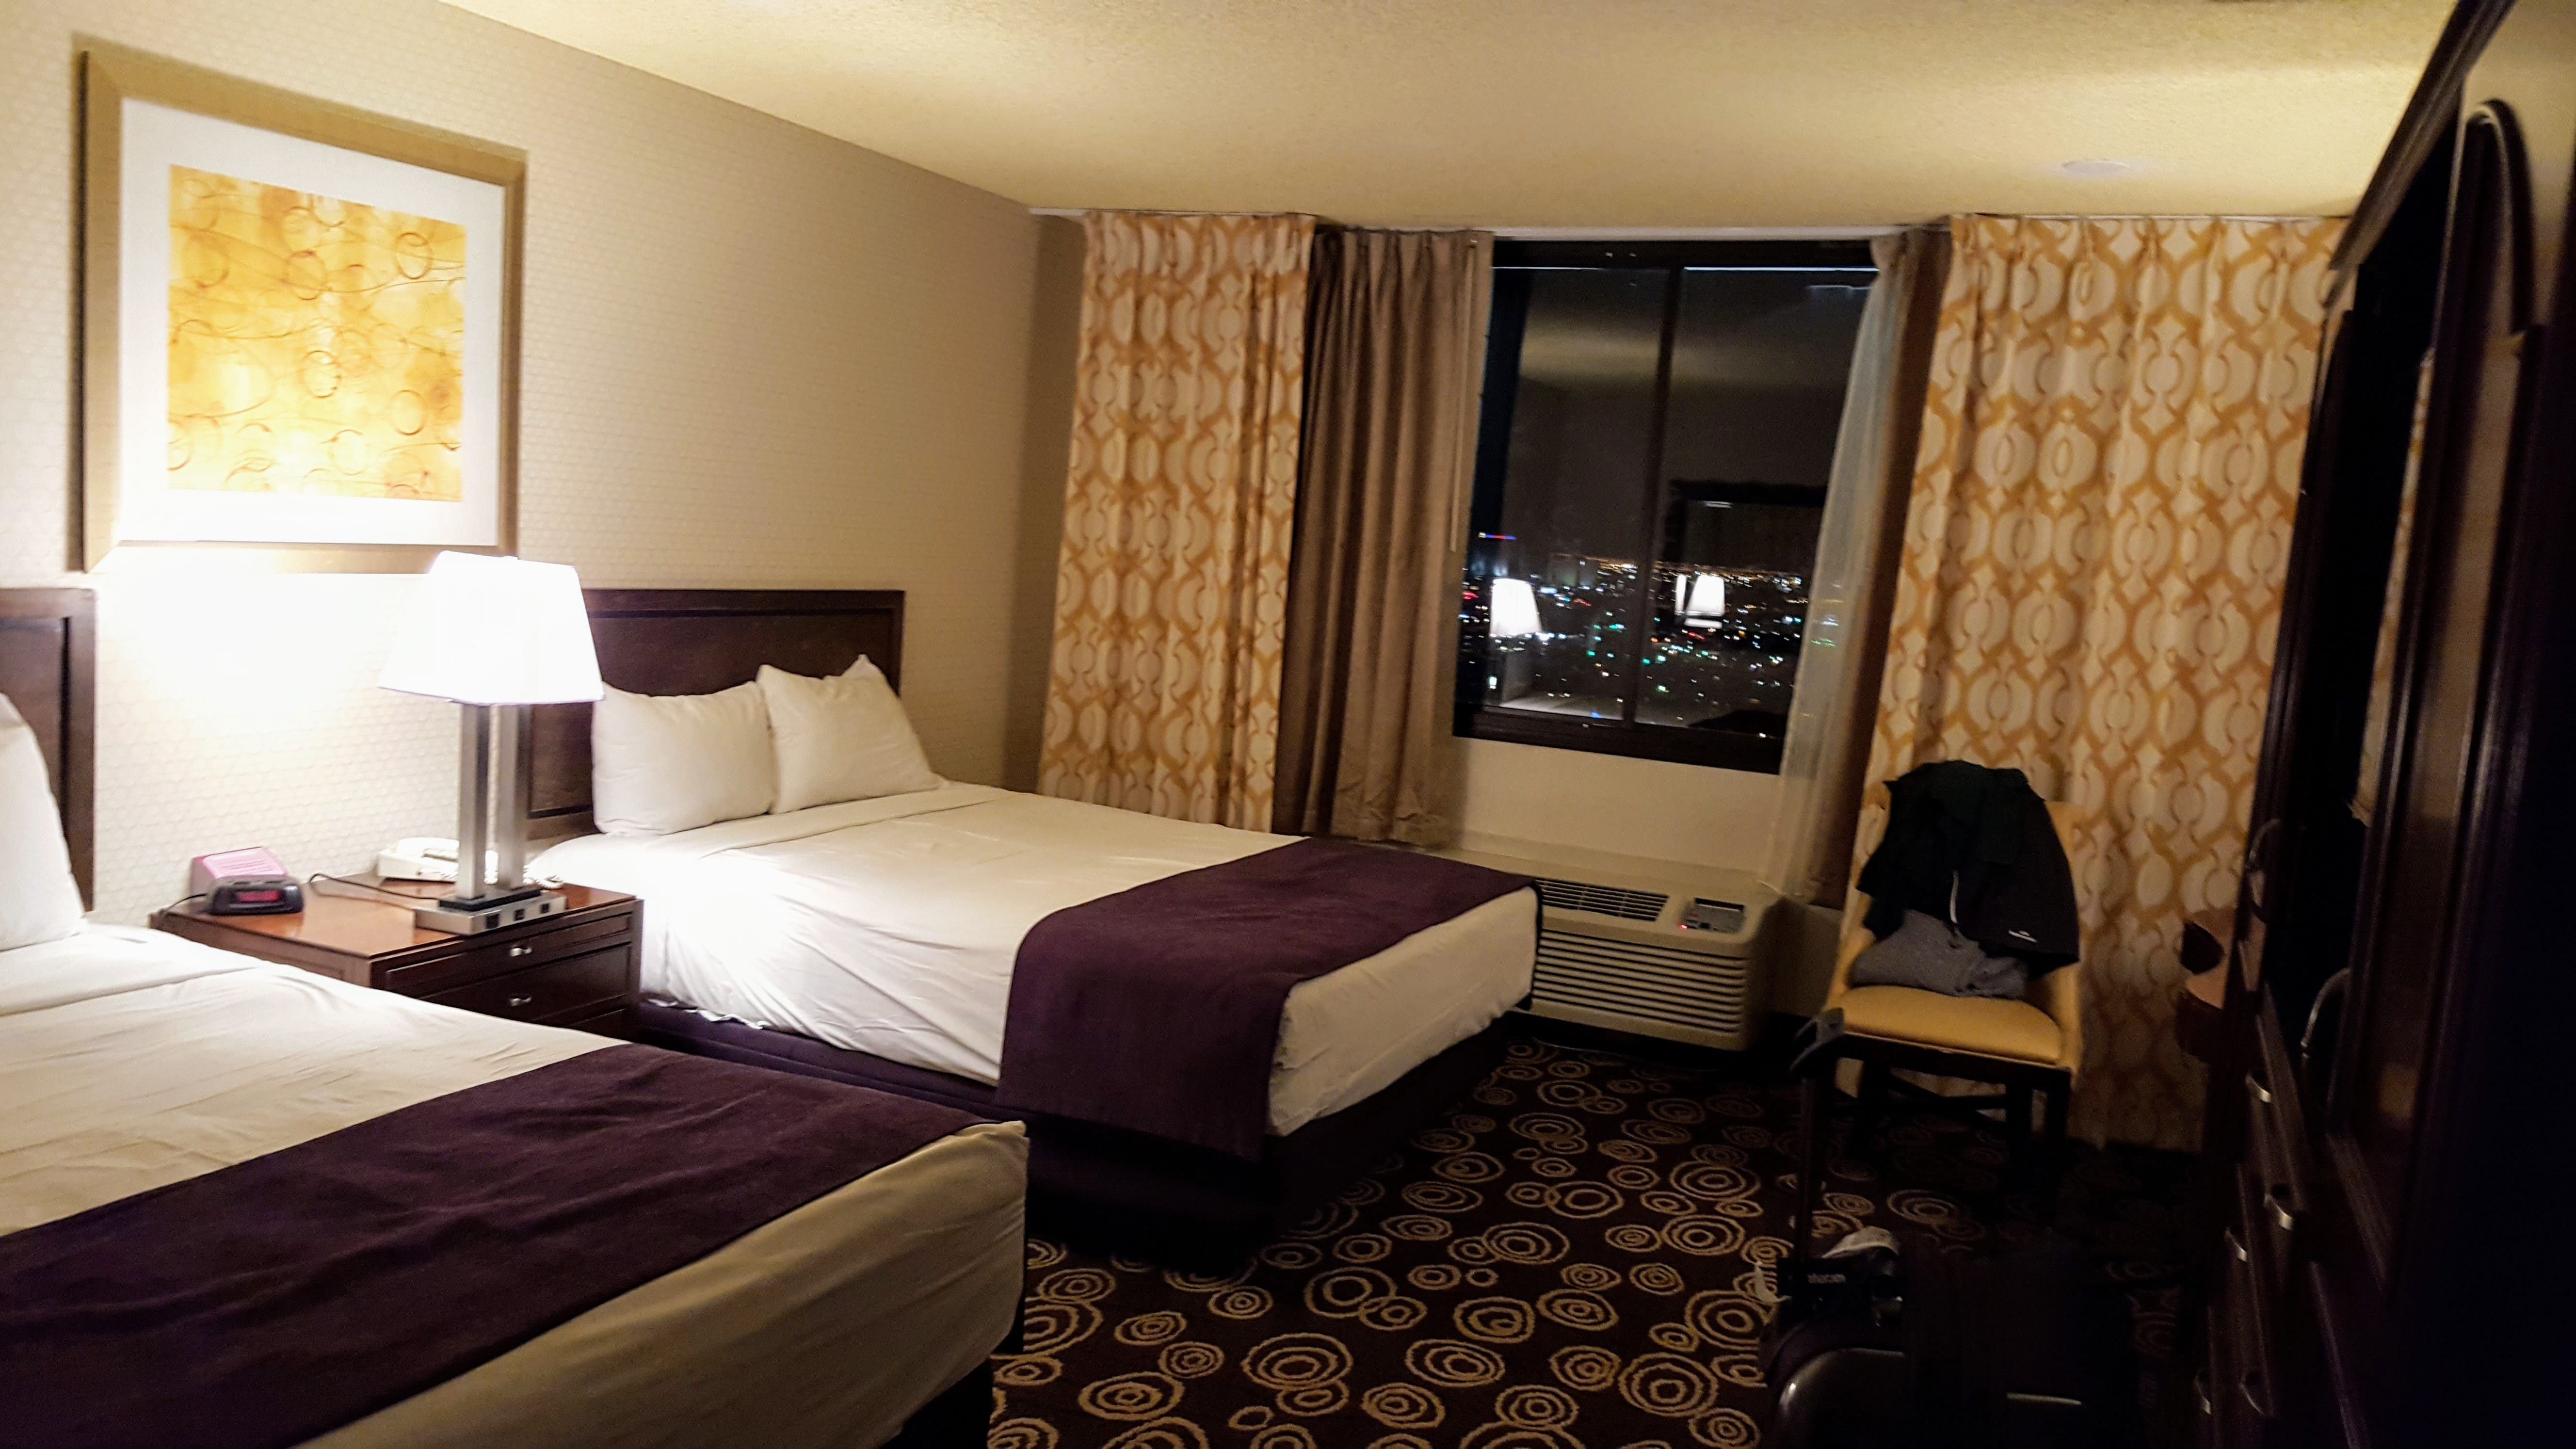 A photo of a Circus Circus hotel room for $26